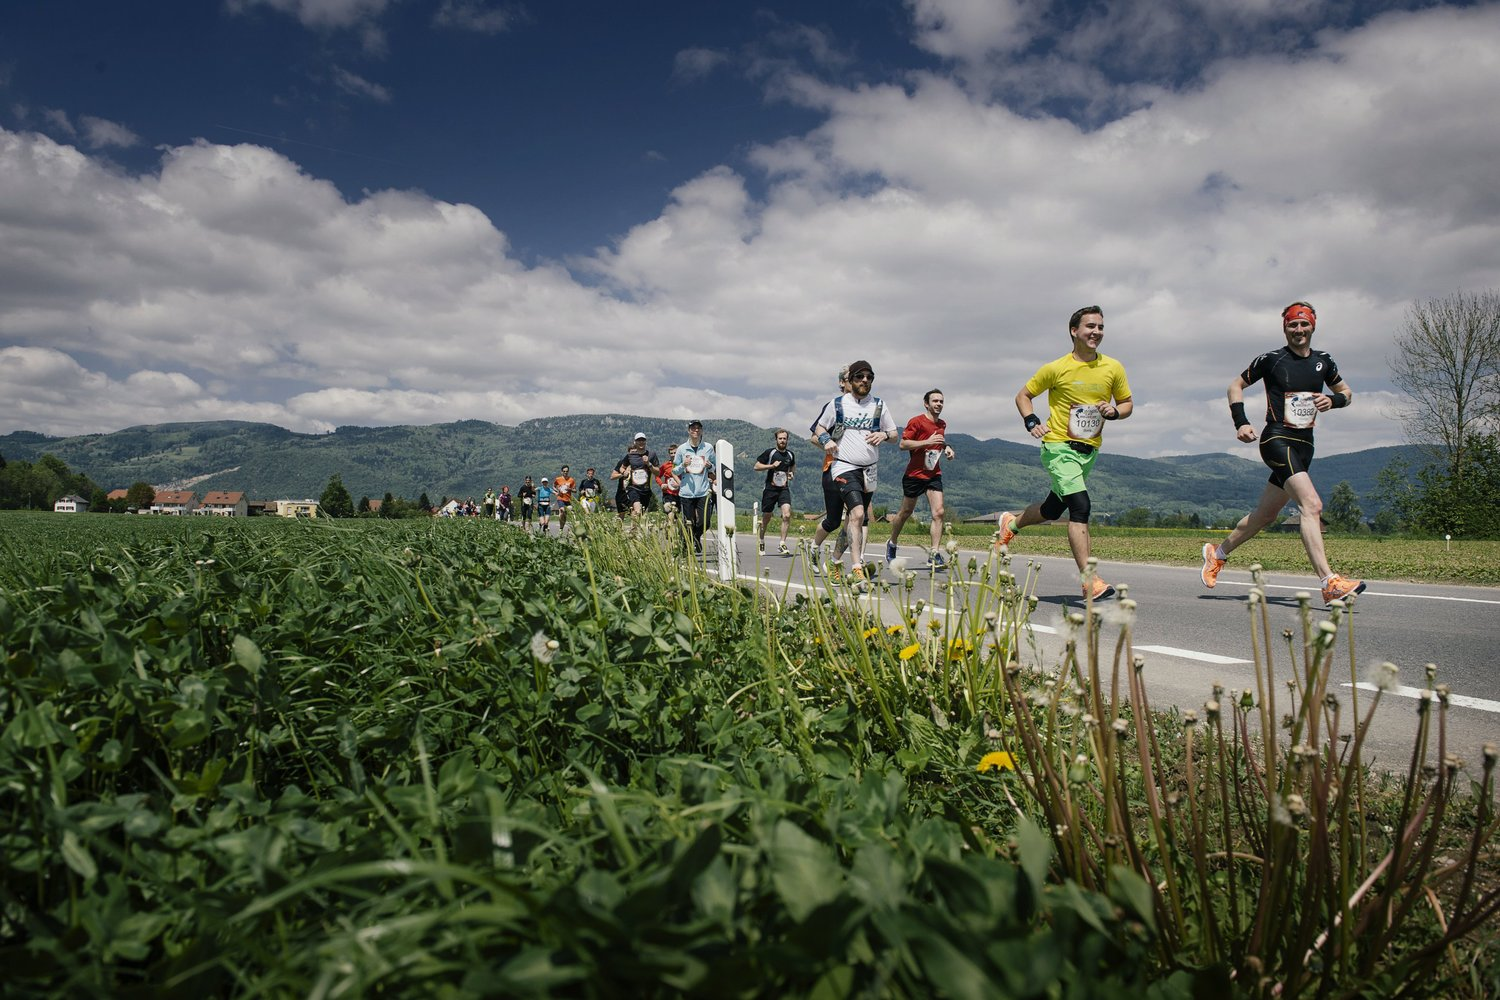 wings-for-life-world-run-2014-switzerland